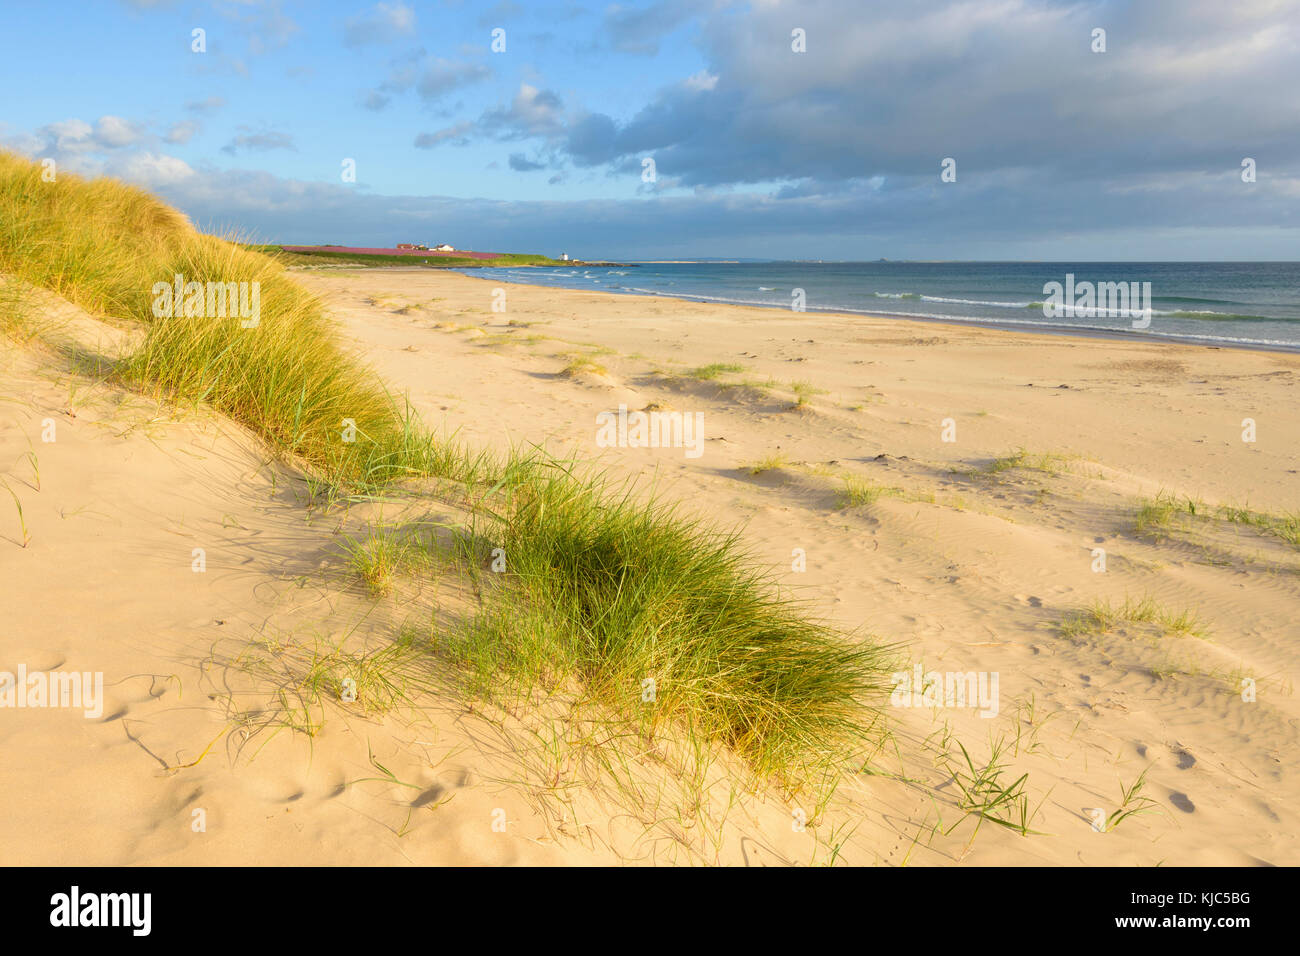 Sand dunes on the beach at Bamburgh with the North Sea in the background in Northumberland, England, United Kingdom - Stock Image